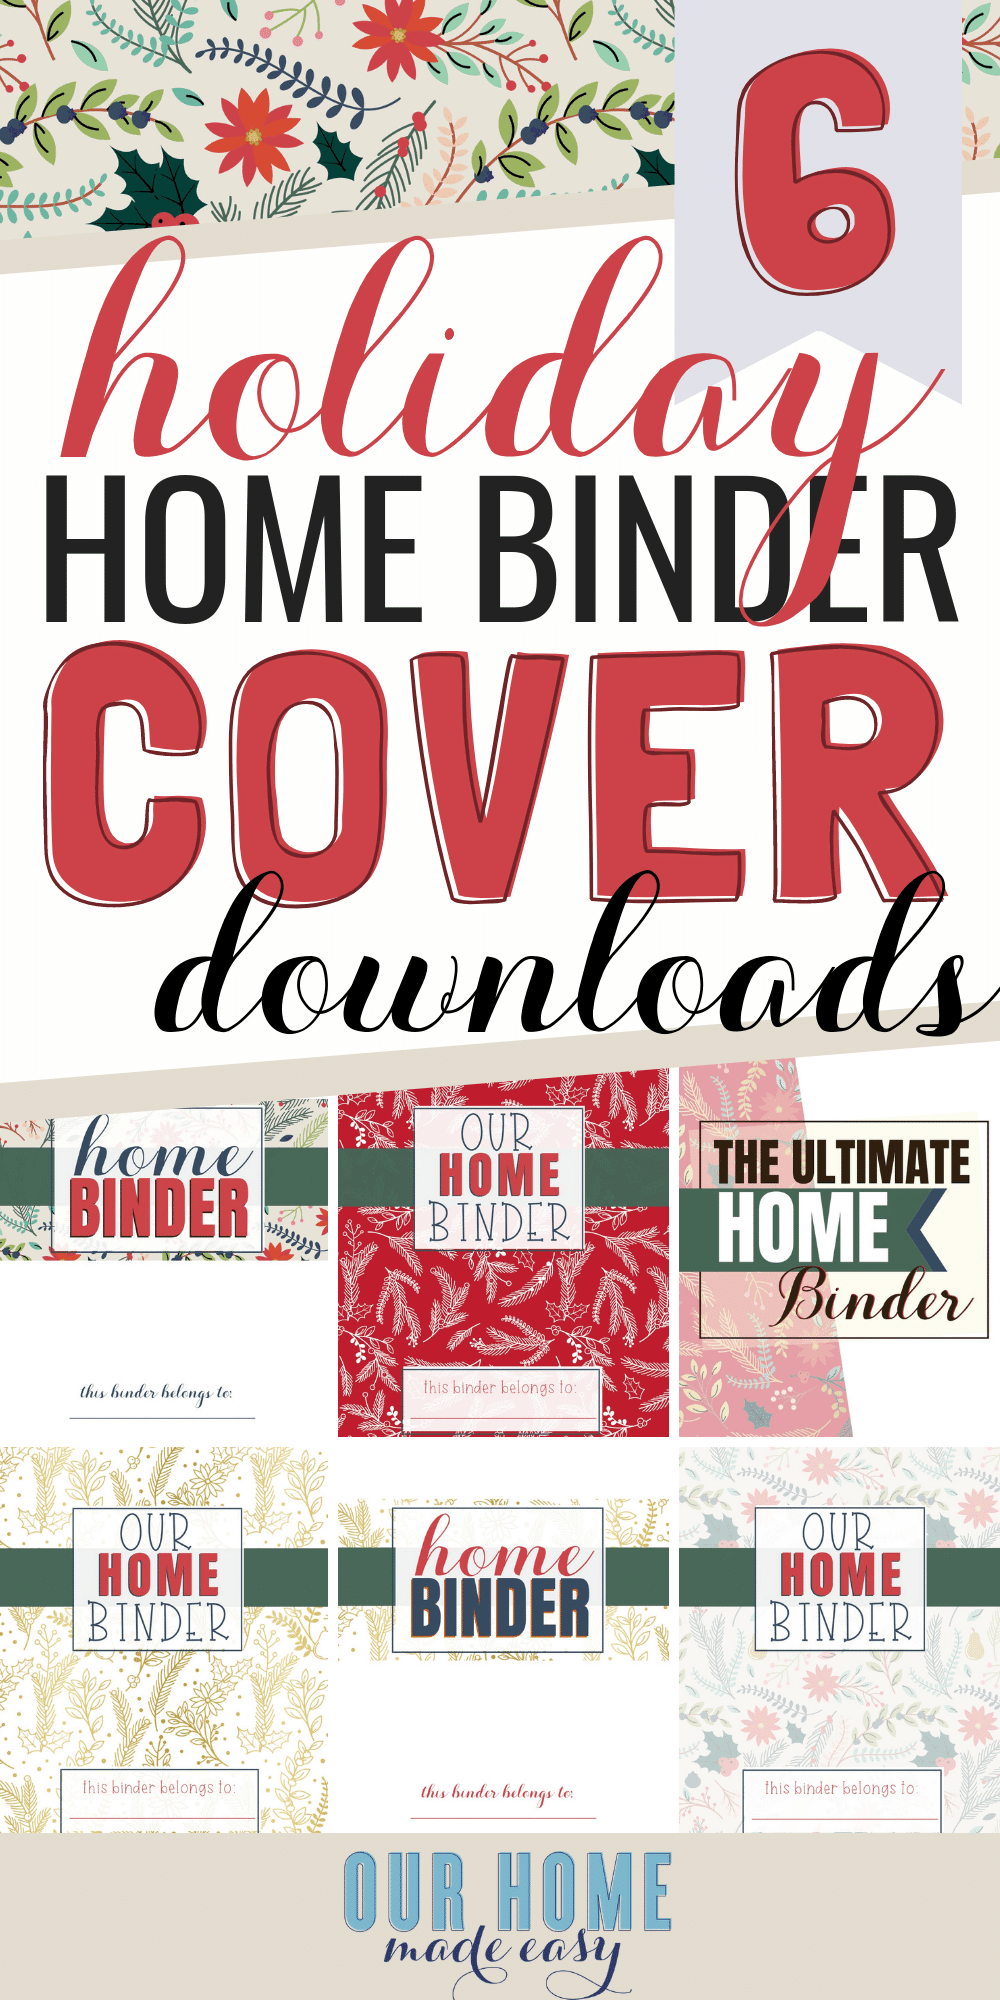 Here are 6 free Christmas & Holiday home binder covers! Print them off and add insta-holiday cheer to your organizing.#organizing #christmas #ourhomemadeeasy